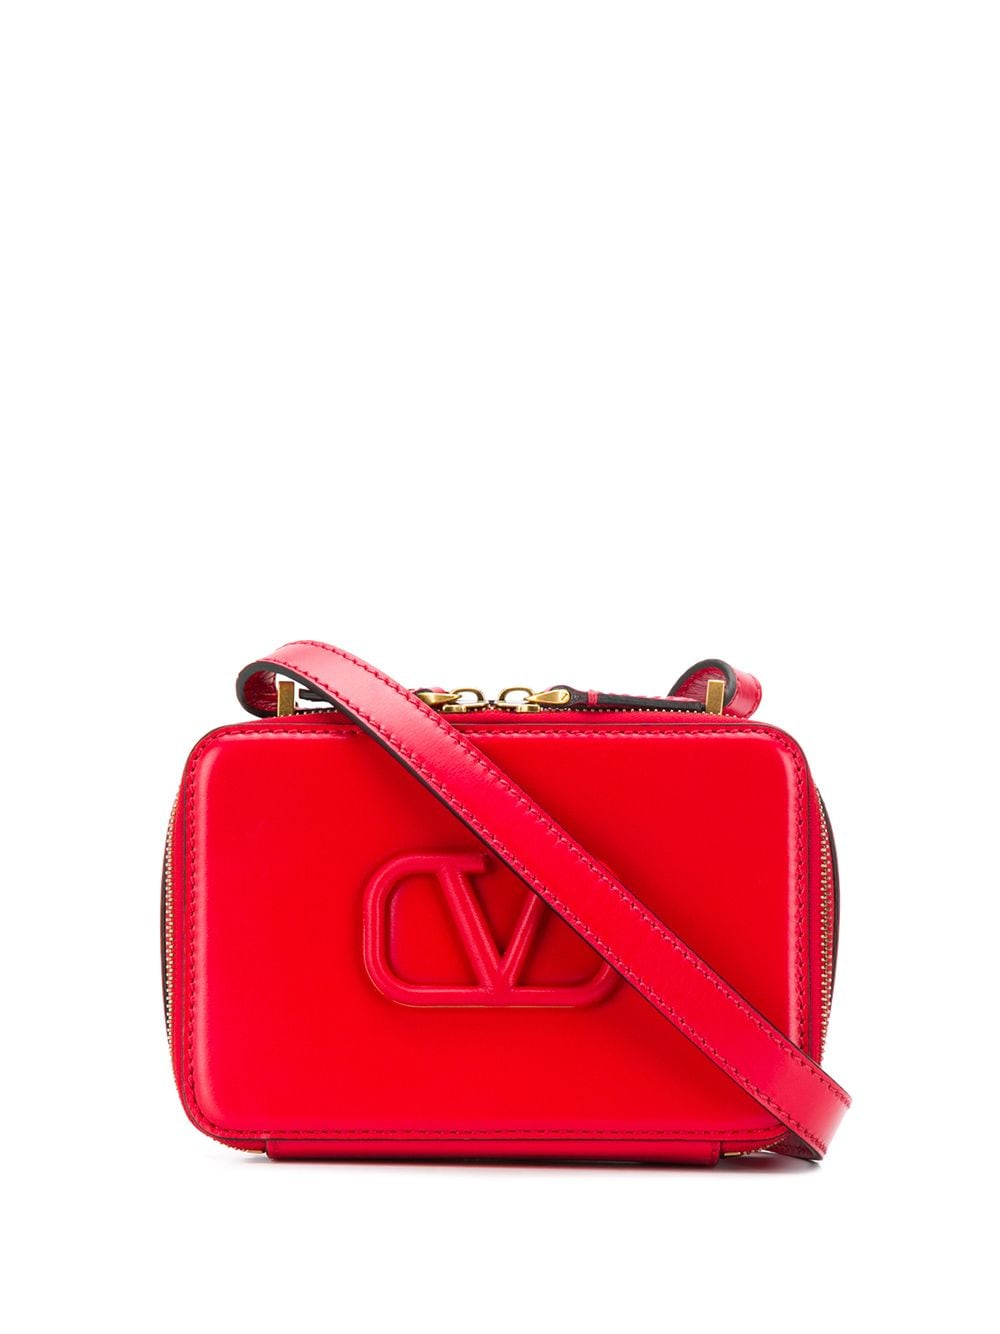 Vsling Small Leather Crossbody Bag